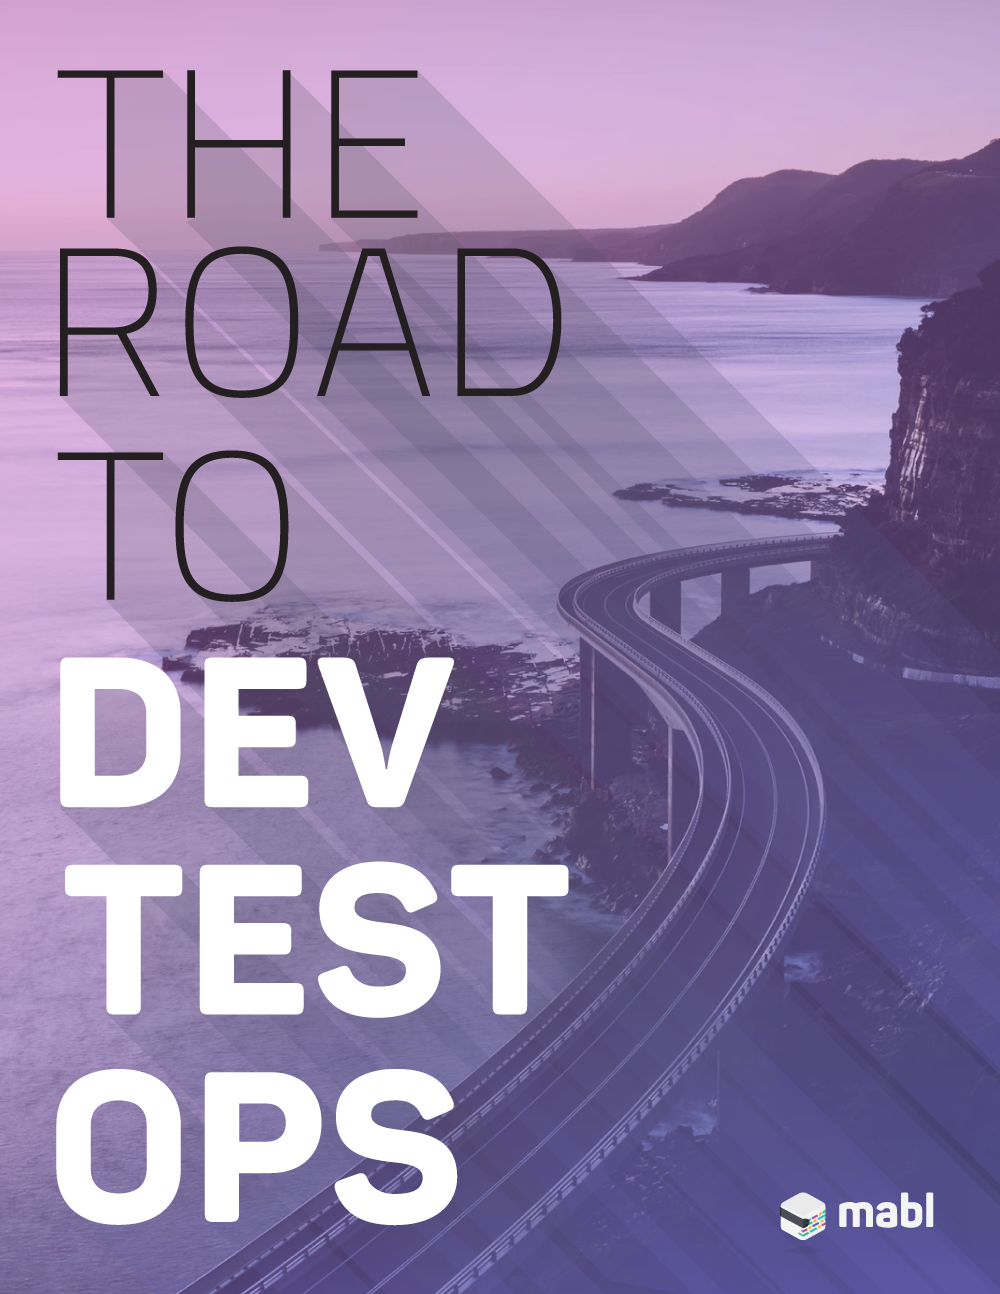 The Road To DevTestOps